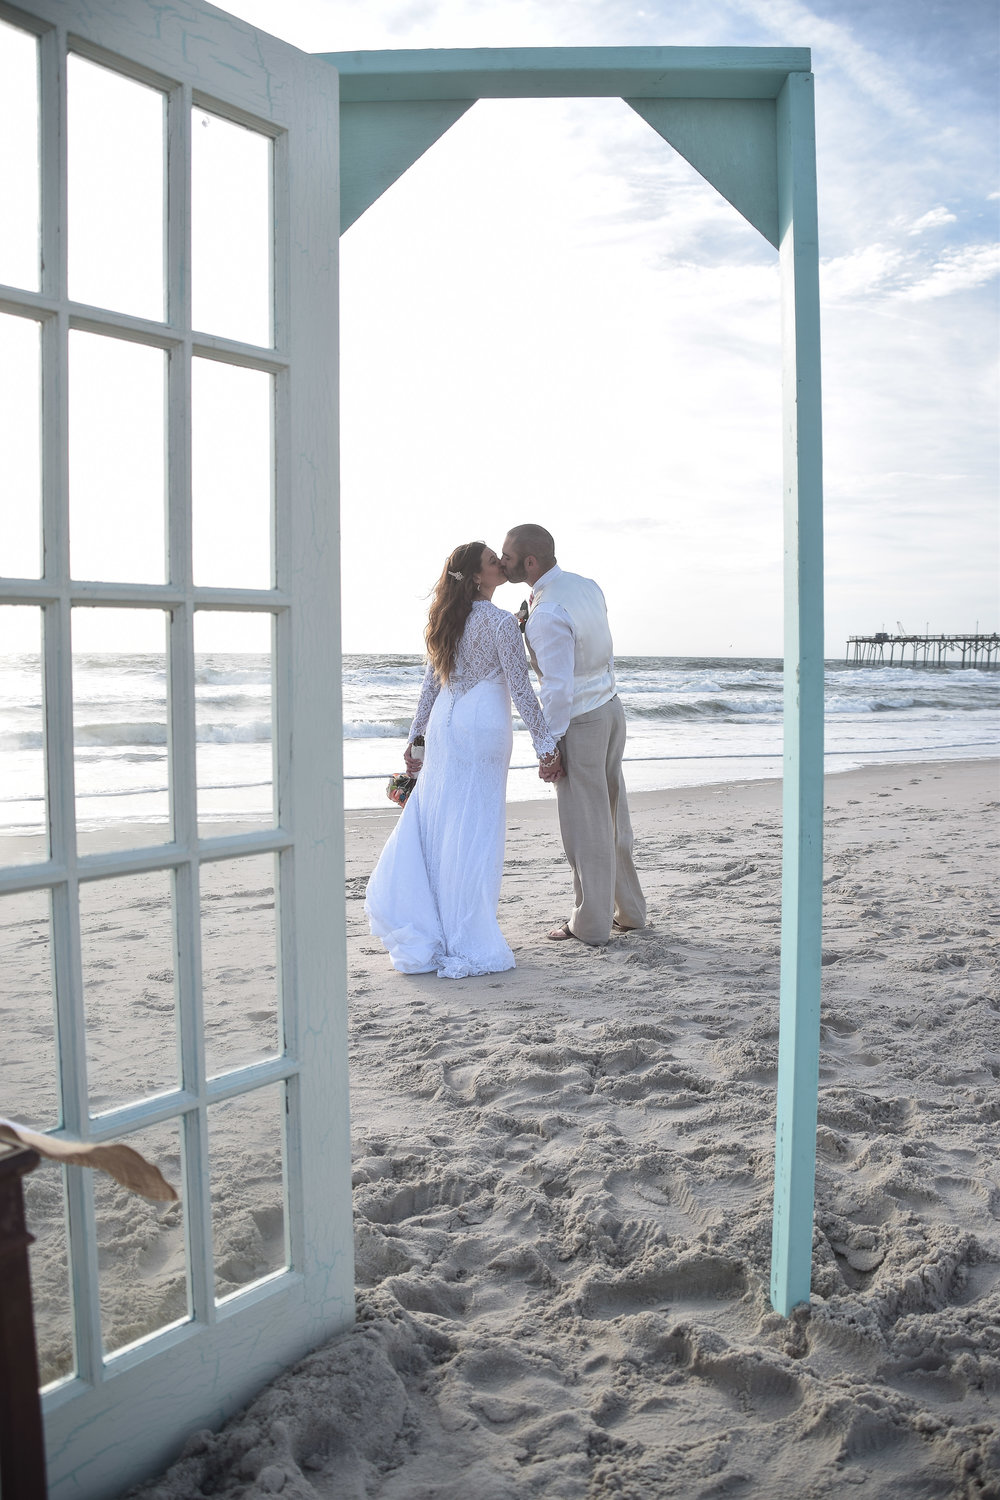 - A kiss through a prop door, on Carolina Beach, NC. Ocean and pier in the background. North End of the beach. Billy Beach Photography.